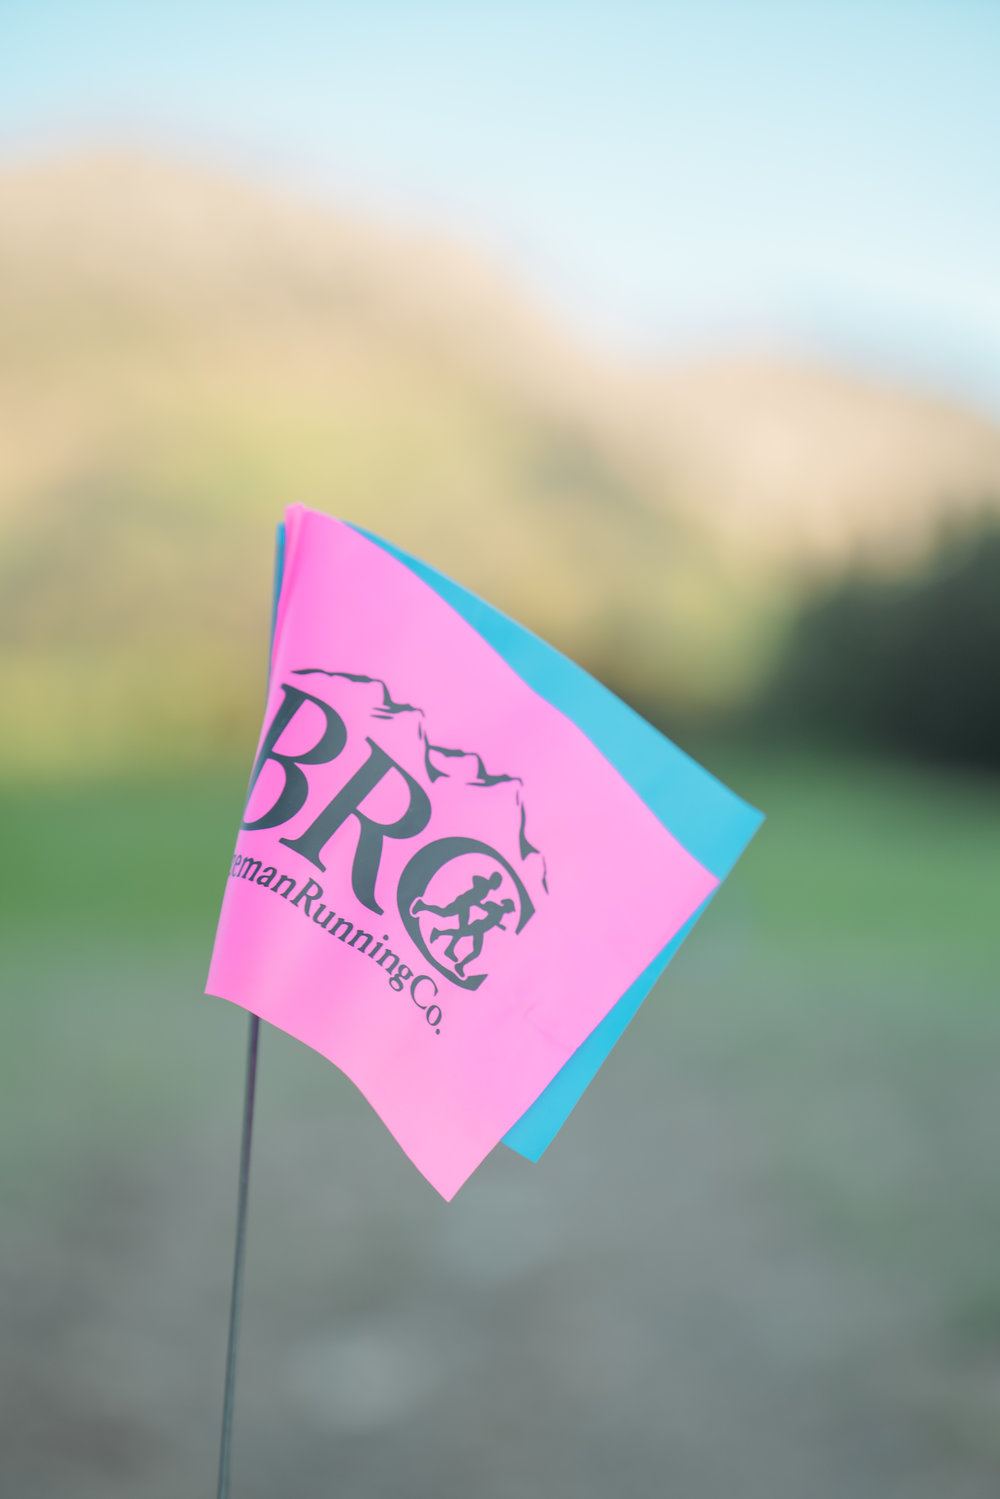 Bozeman Running Co. flags just before the racing of Crosscuts at Bridger Bowl just north of Bozeman, Montana.